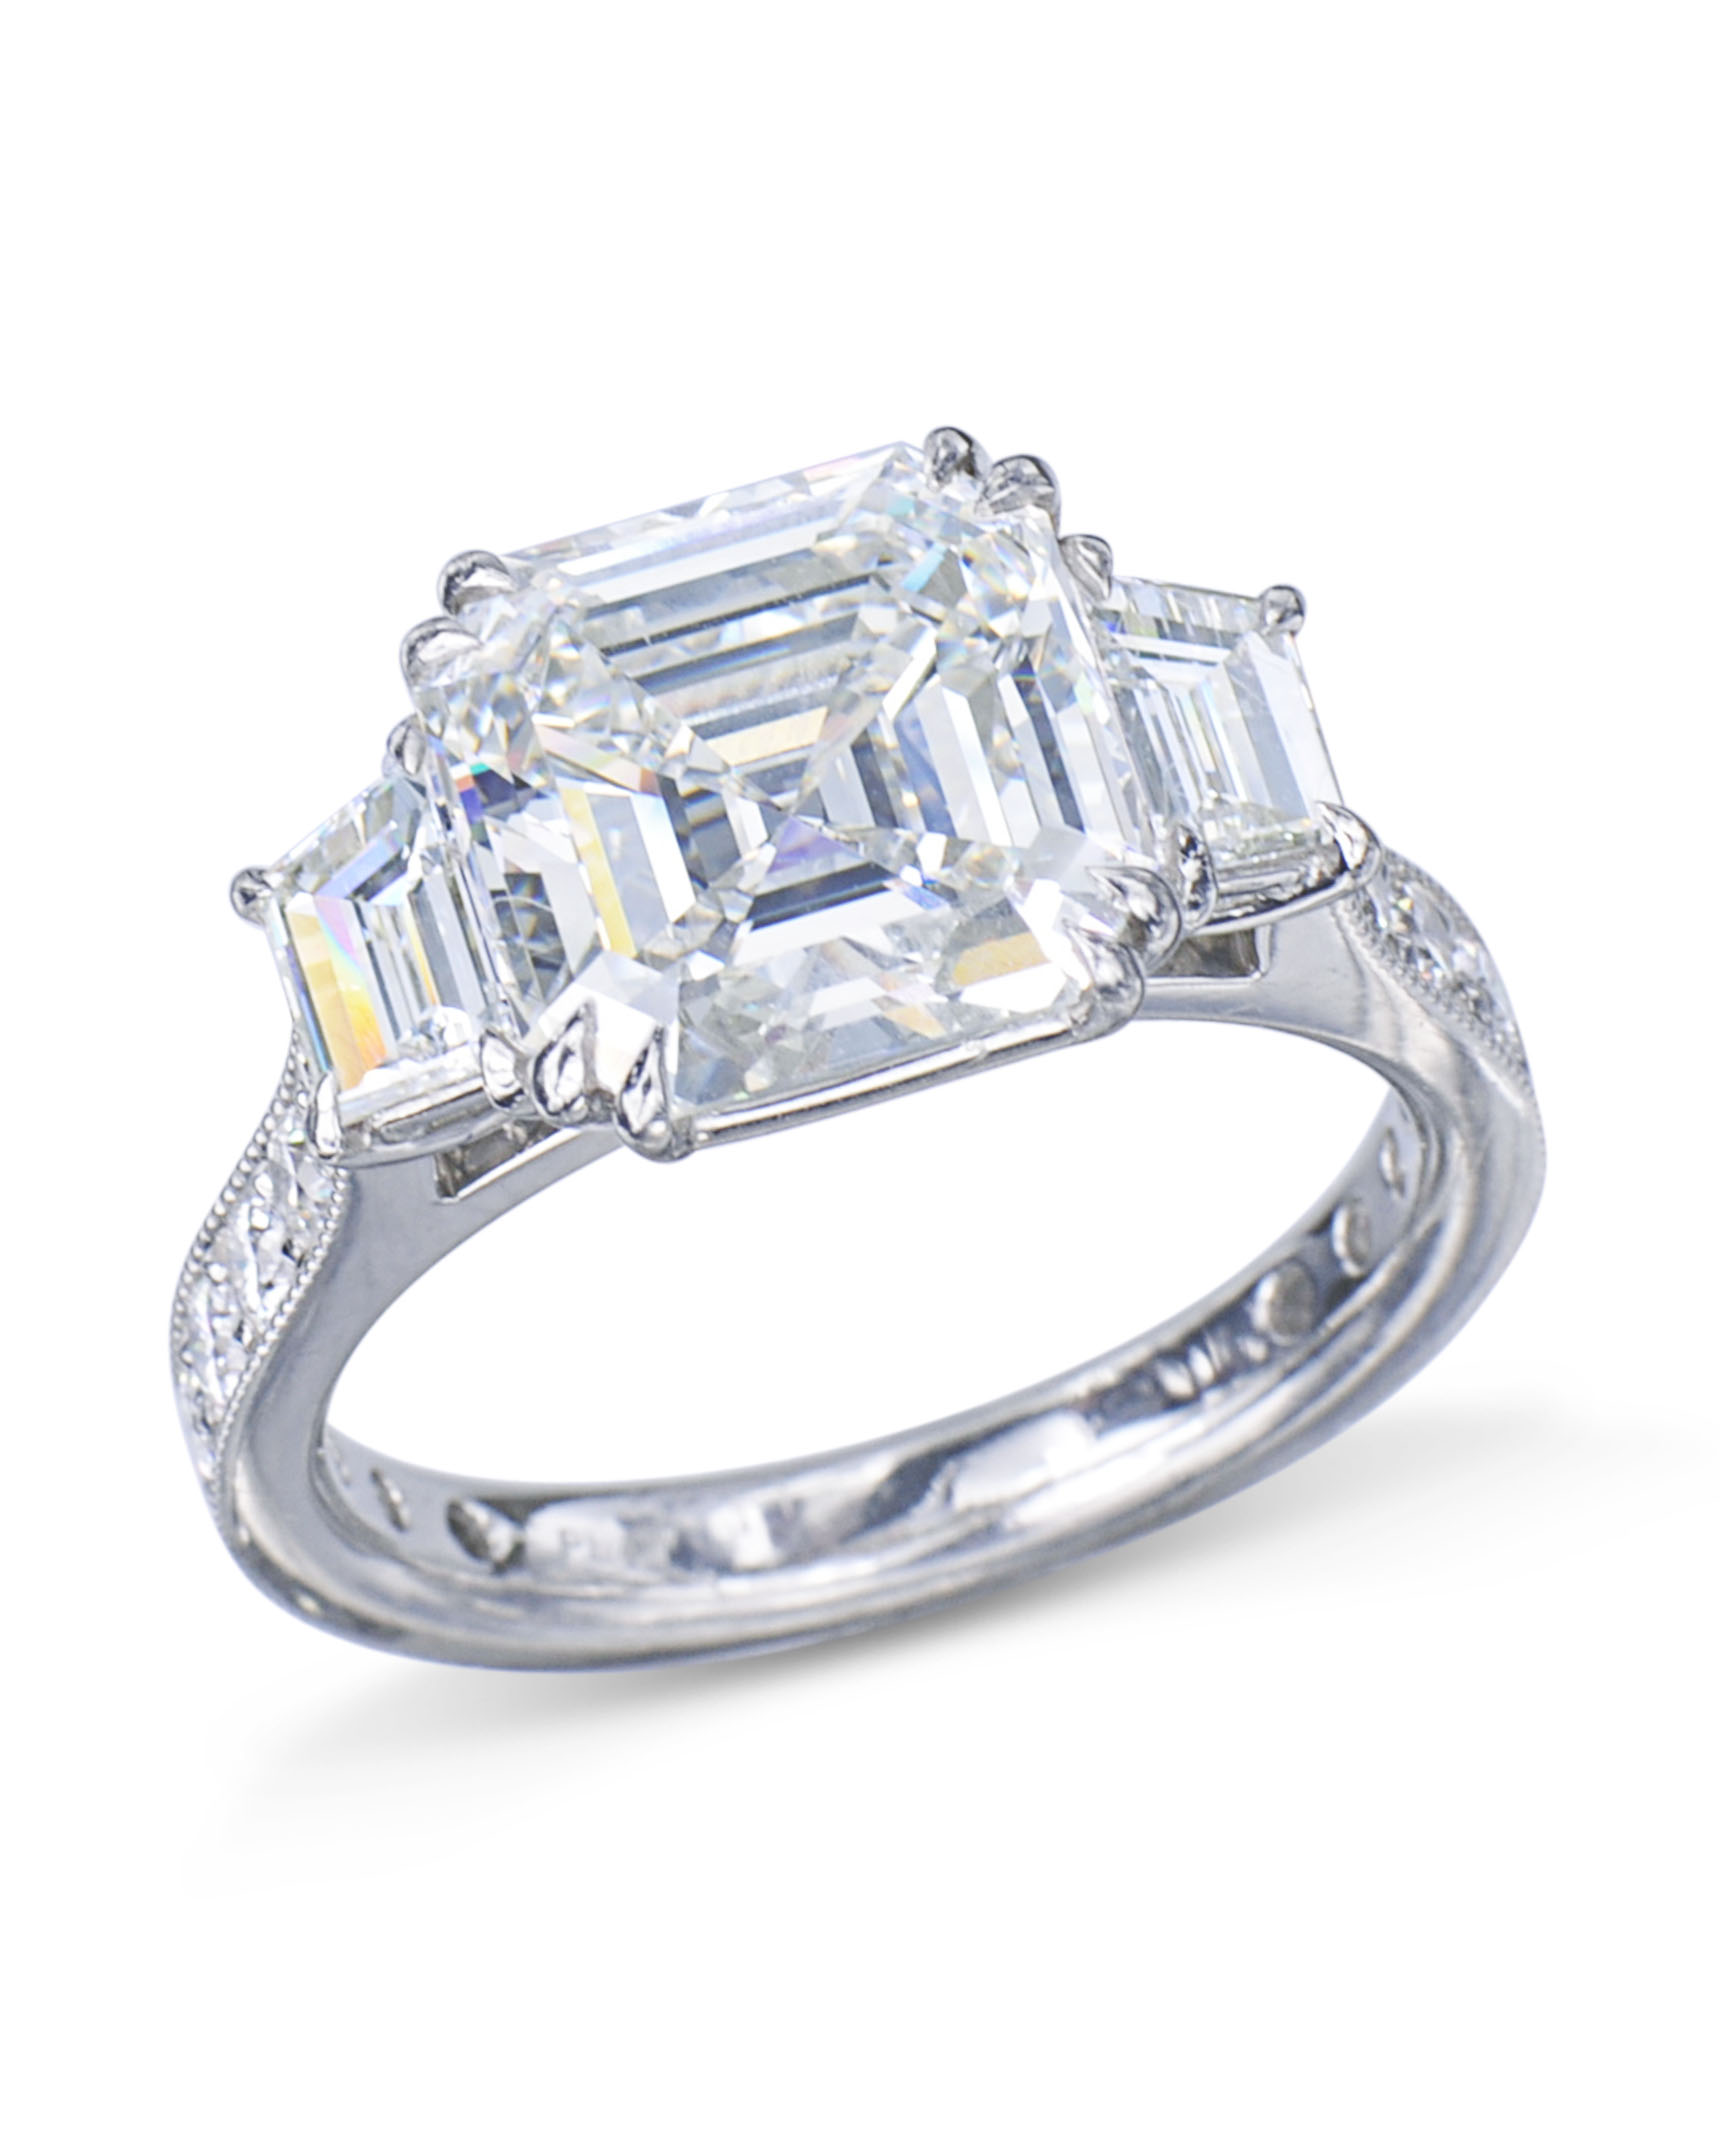 asscher rebecca rebeccaovermann new cut engagement ring rings overmann finished product bezel arrivals